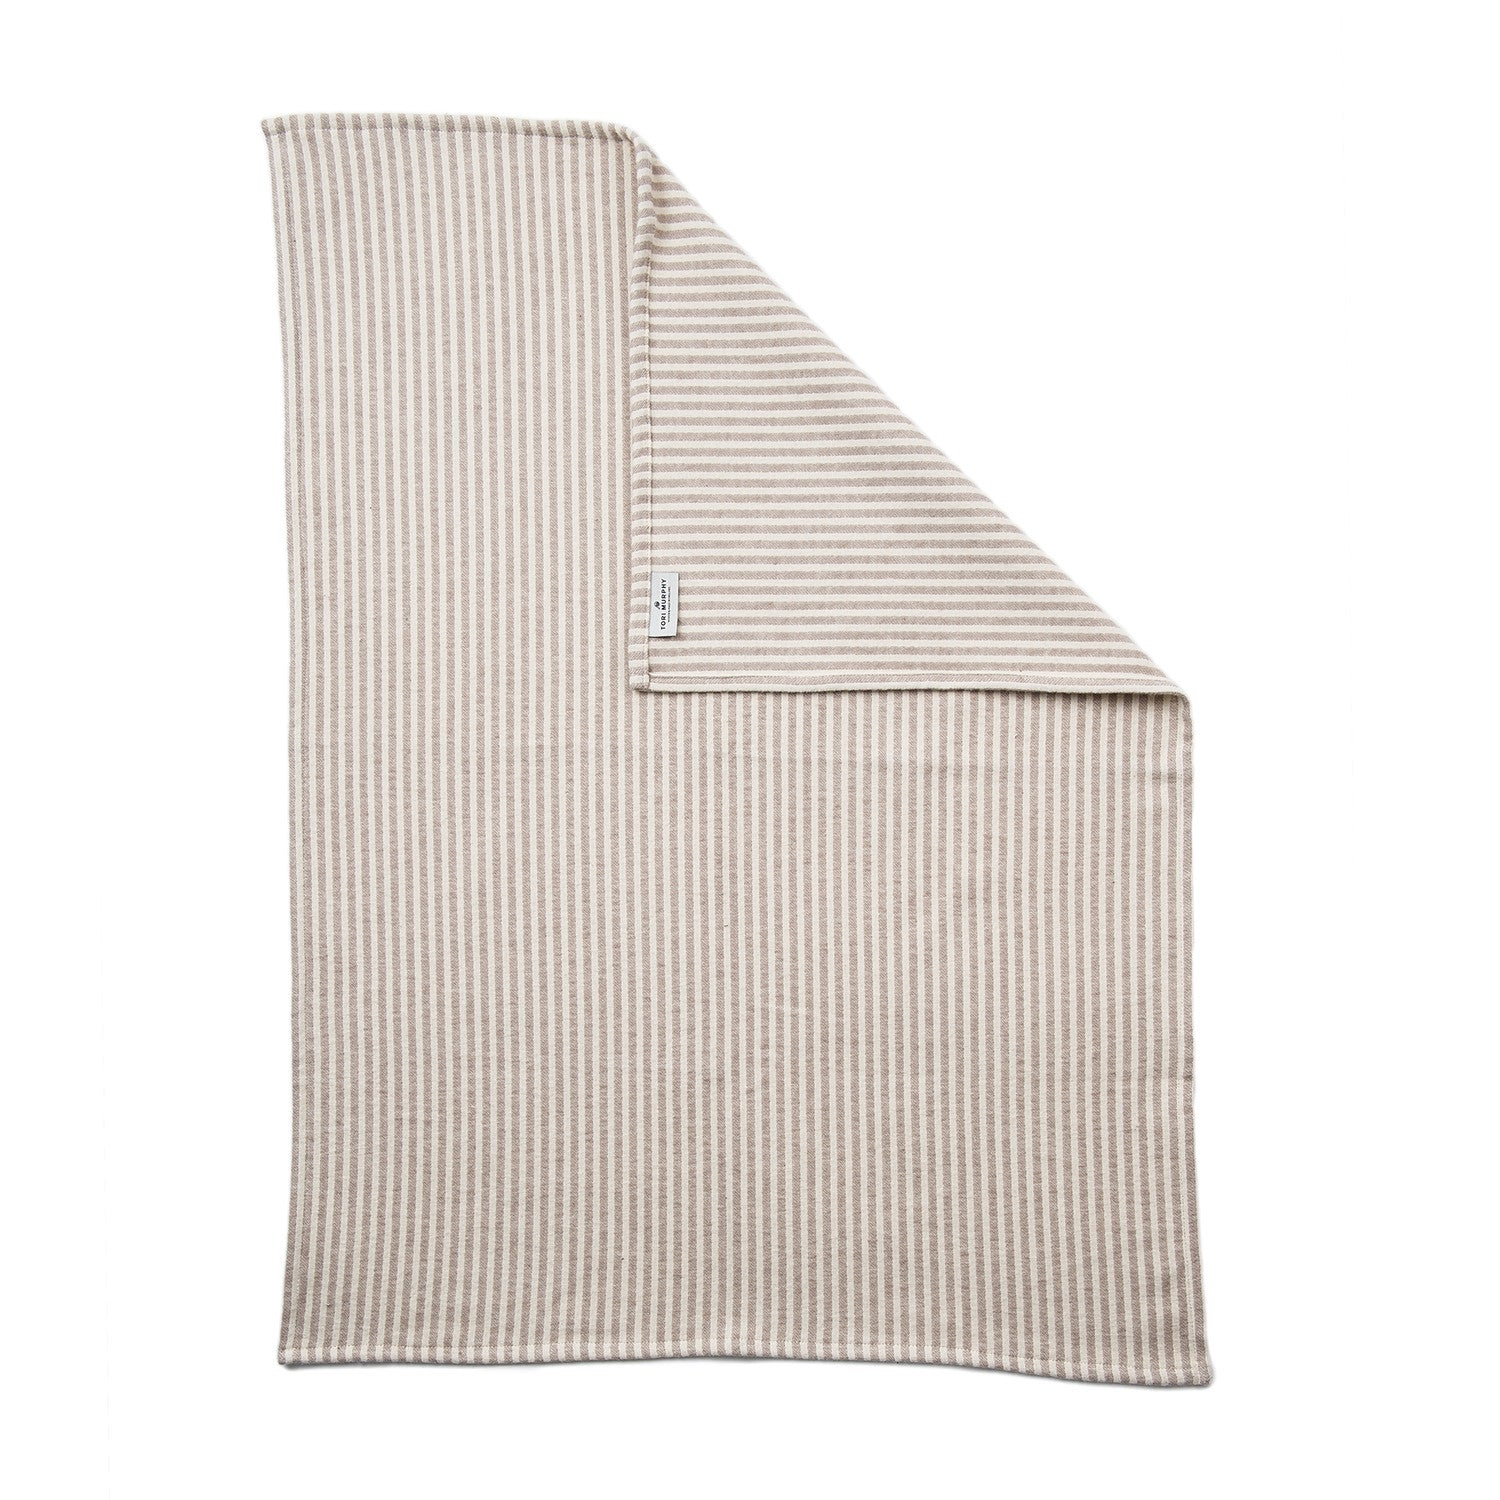 Brushed Cotton Baby Blanket | Tori Murphy Ltd